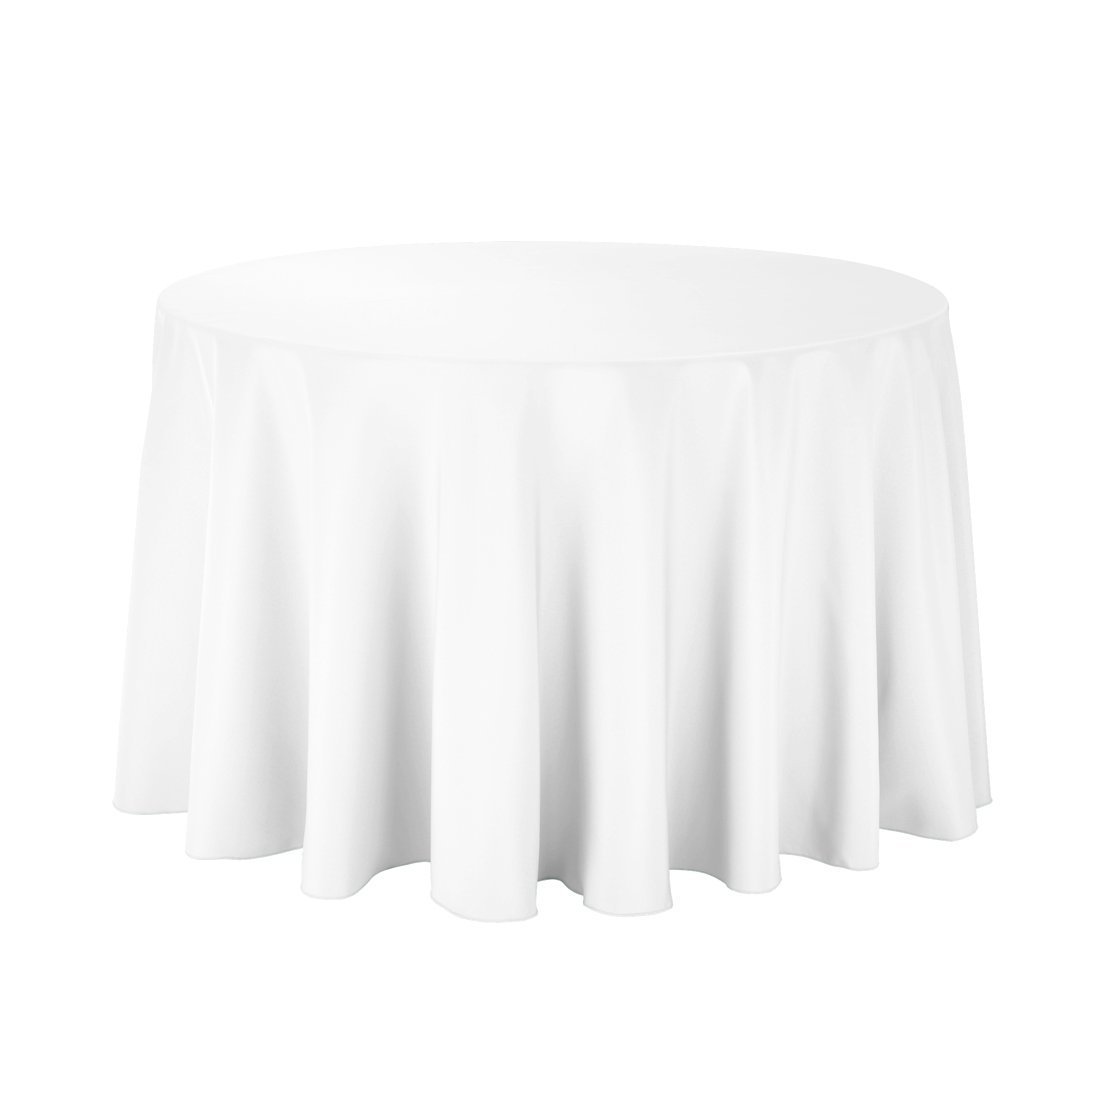 Craft and Party - 10 pcs Round Tablecloth for Home, Party, Wedding or Restaurant Use. (White, 108'' Round)